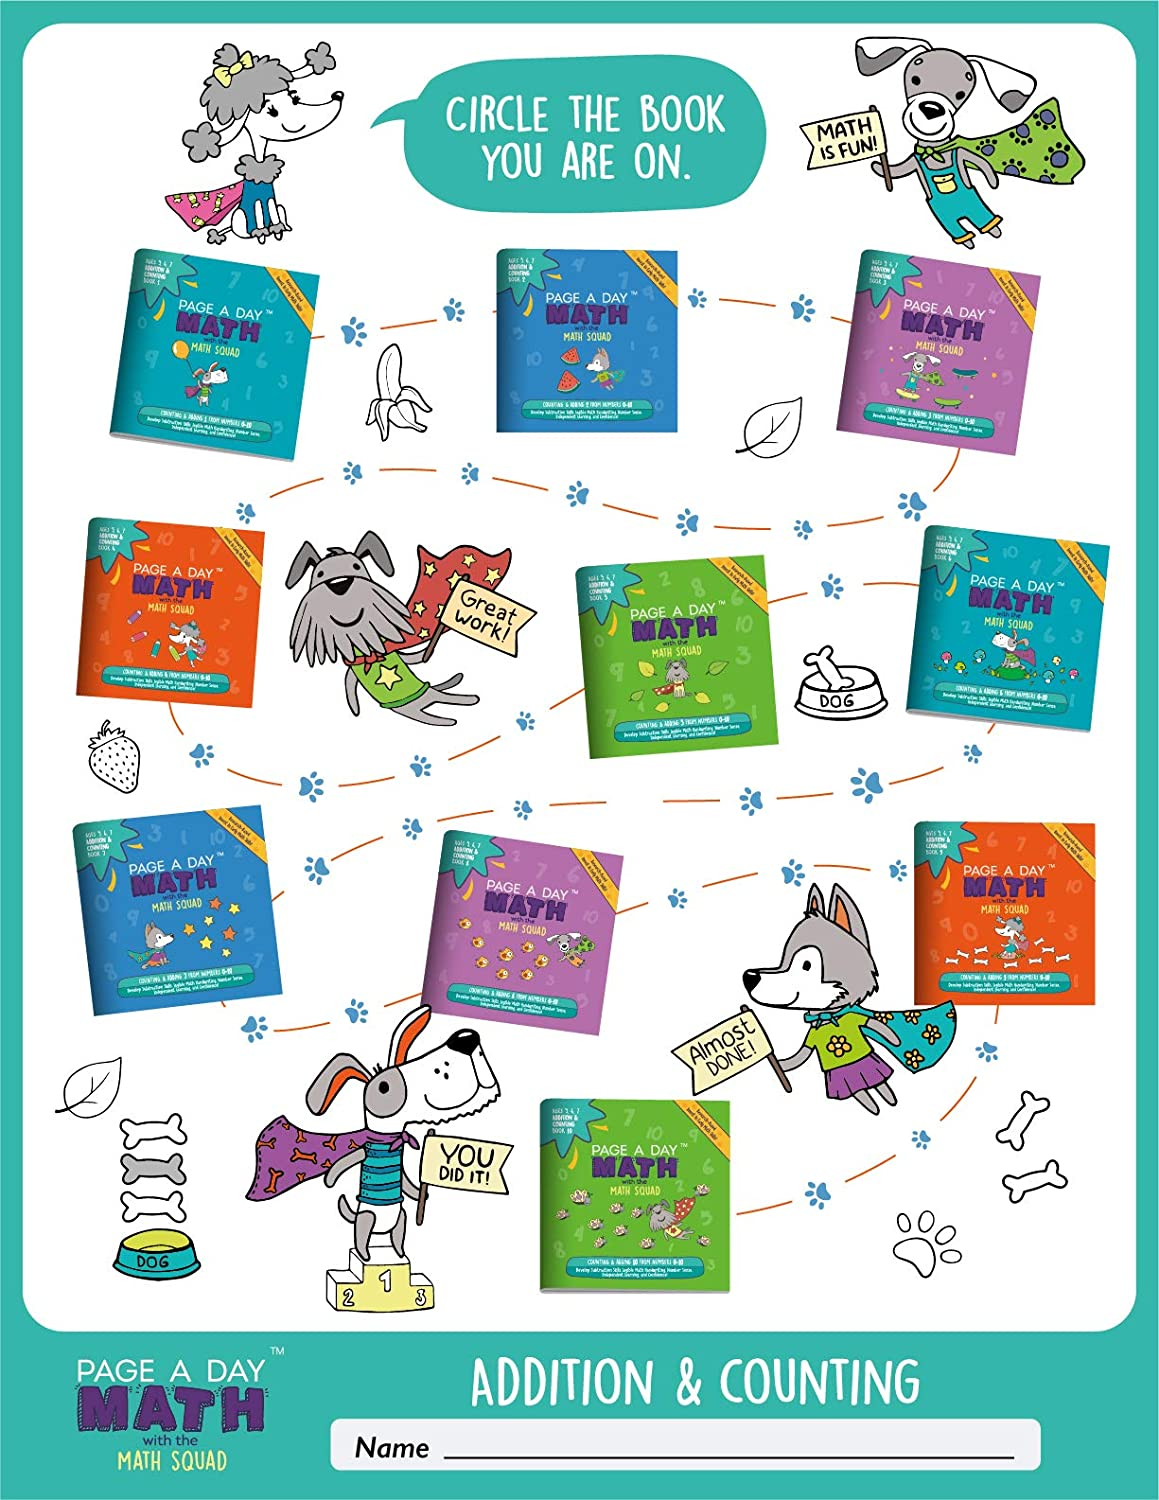 Deluxe Addition Learning System Adding 0-10 320 Total Pages Certificates 6 Months of Practice! Achievement Stars 3,500 Problems 10-Books Grades K-2 Penmanship